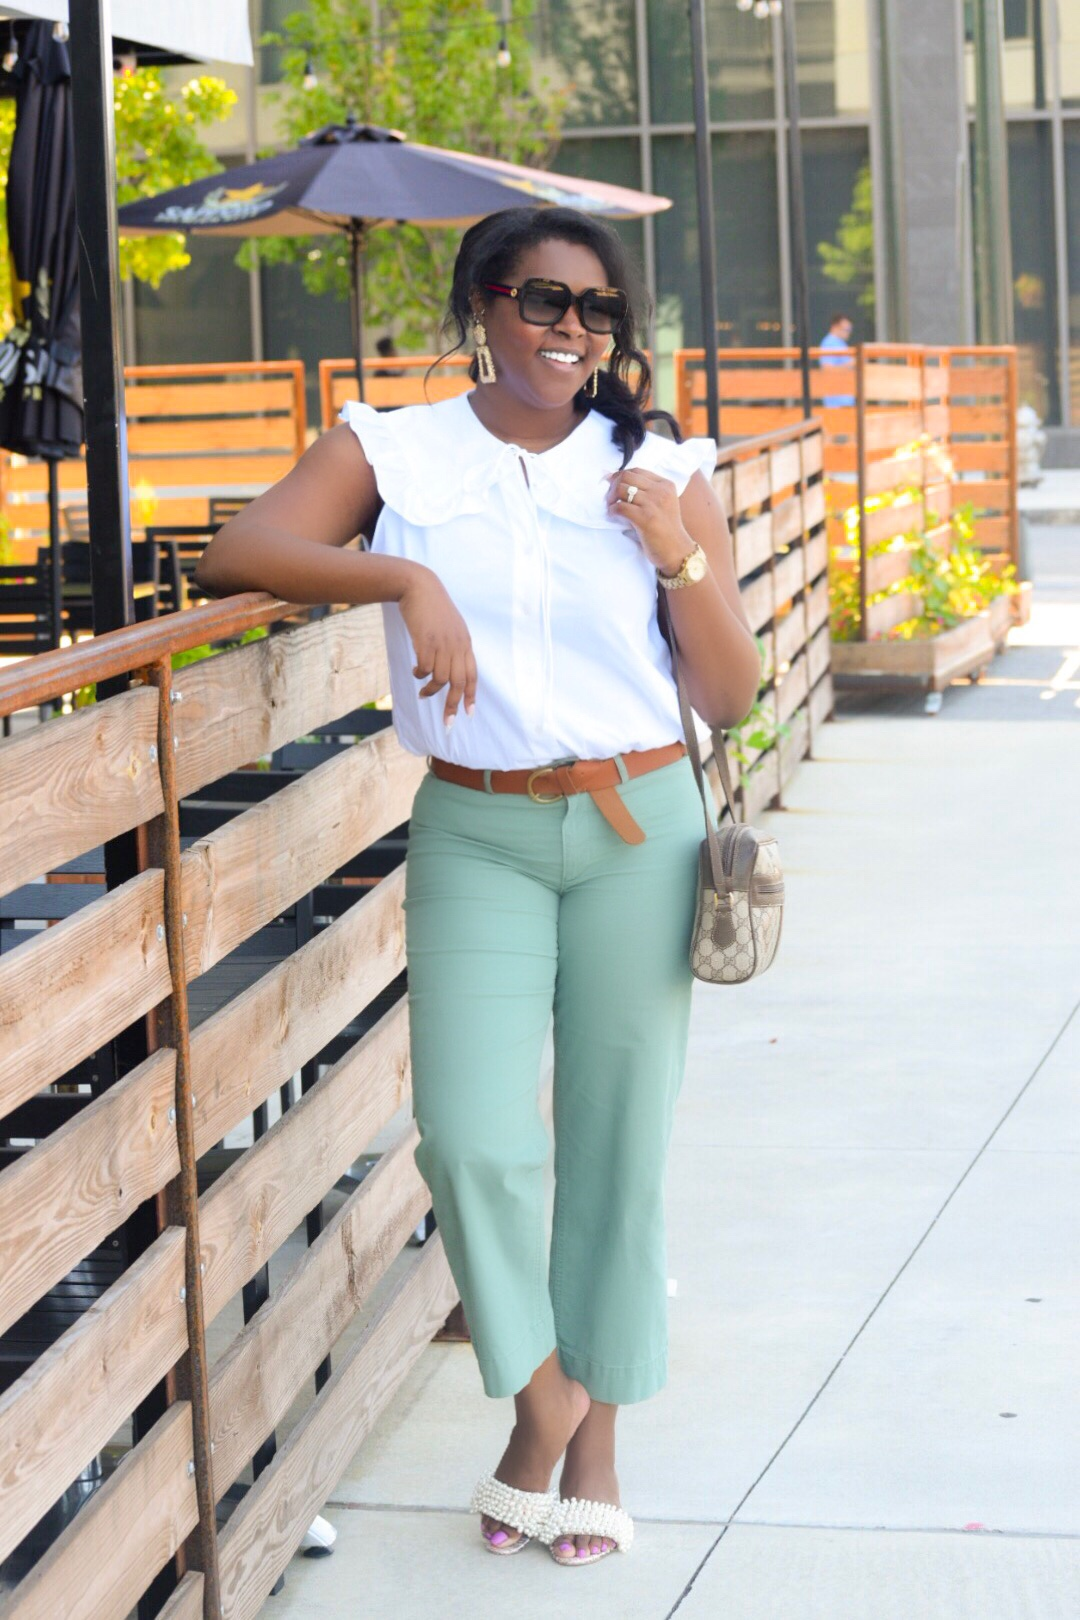 Zara Peter Pan  Top , Old Navy  Trousers , Gucci Sunnies & Bag (mine is vintage, but latest version  here ), Tory Burch Sandals (purchased a few years back), Zara  Earrings